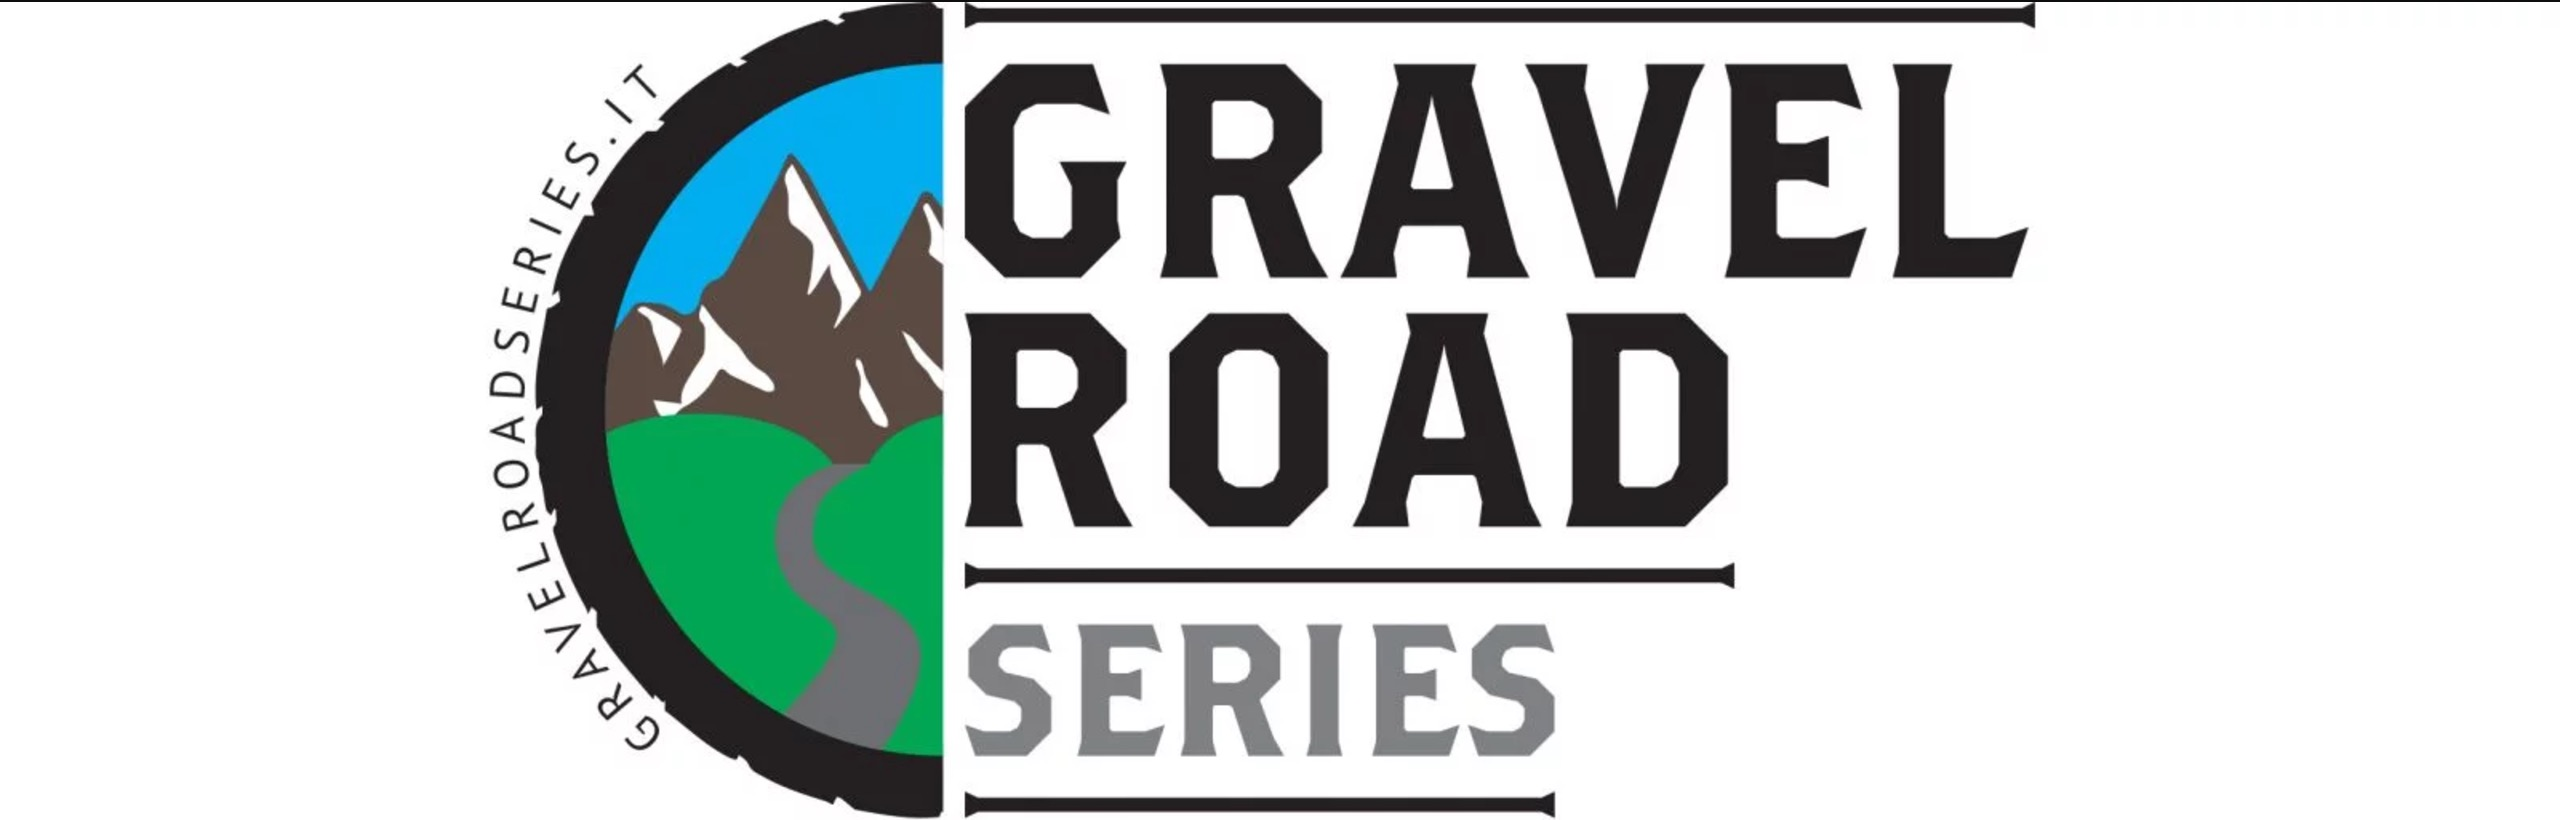 Circuito Gravel Road Series 2017